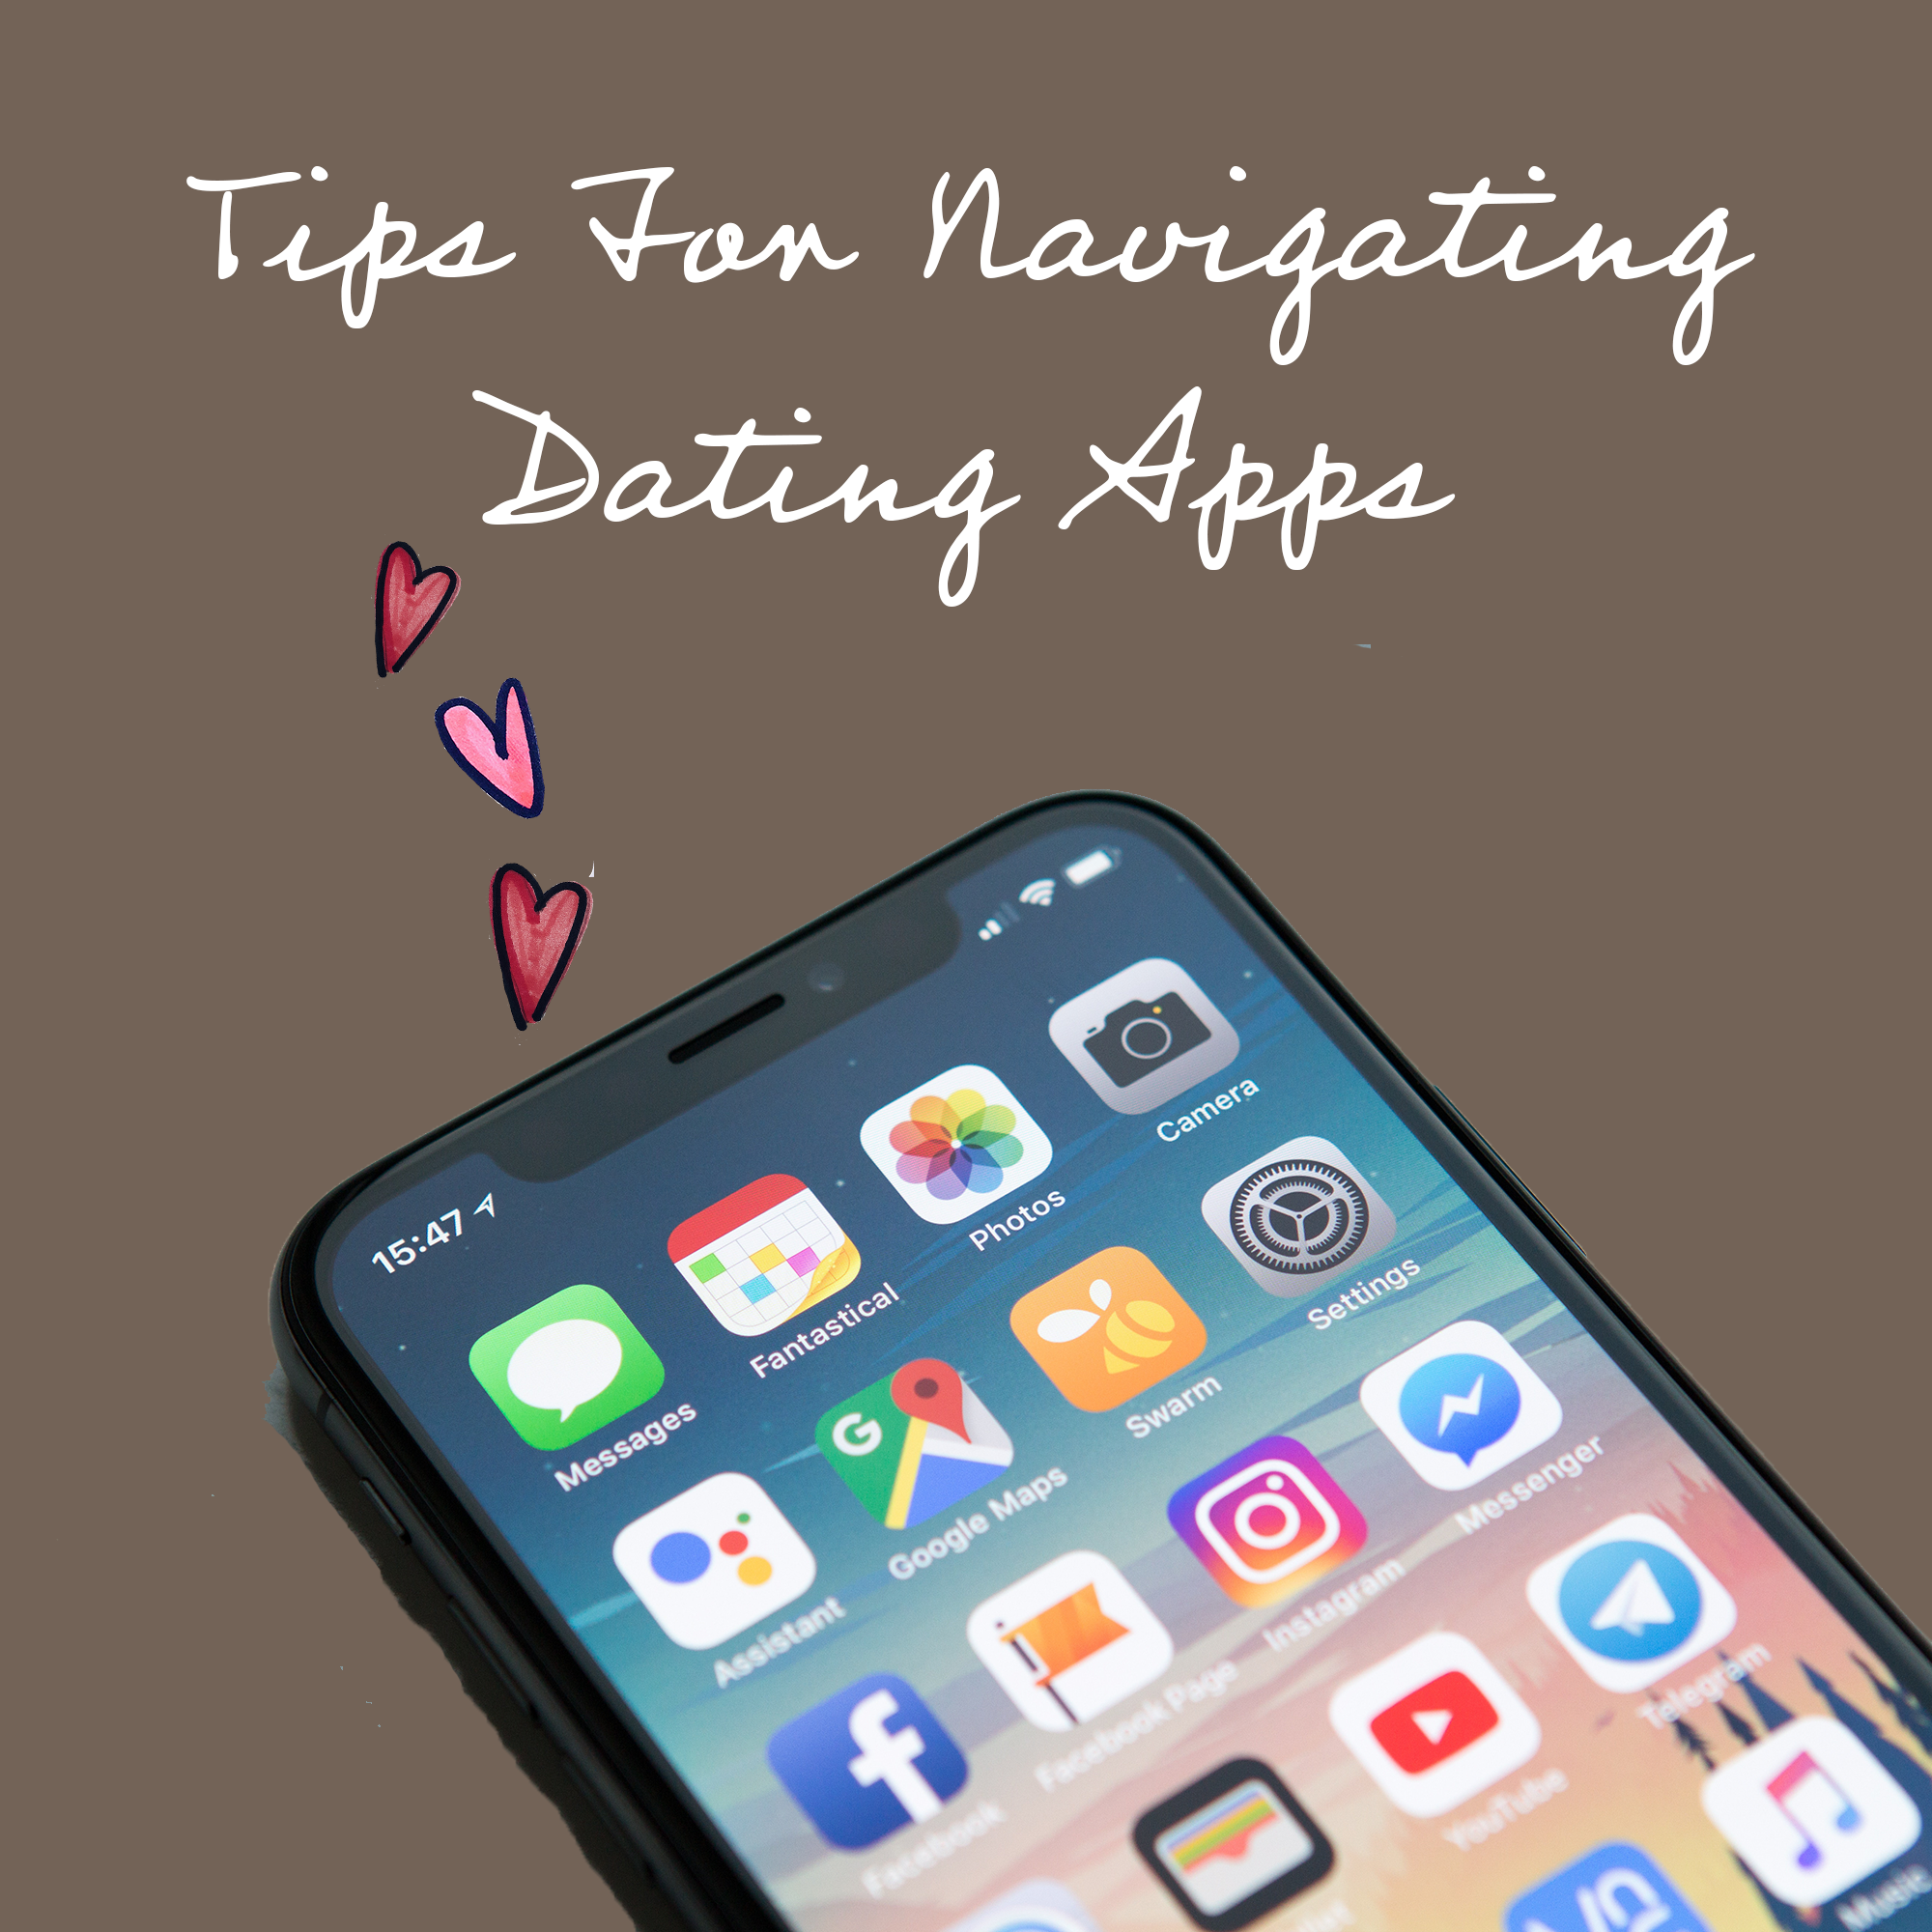 7 Tips For Navigating Dating Apps in a Safe and Empowering Way.png